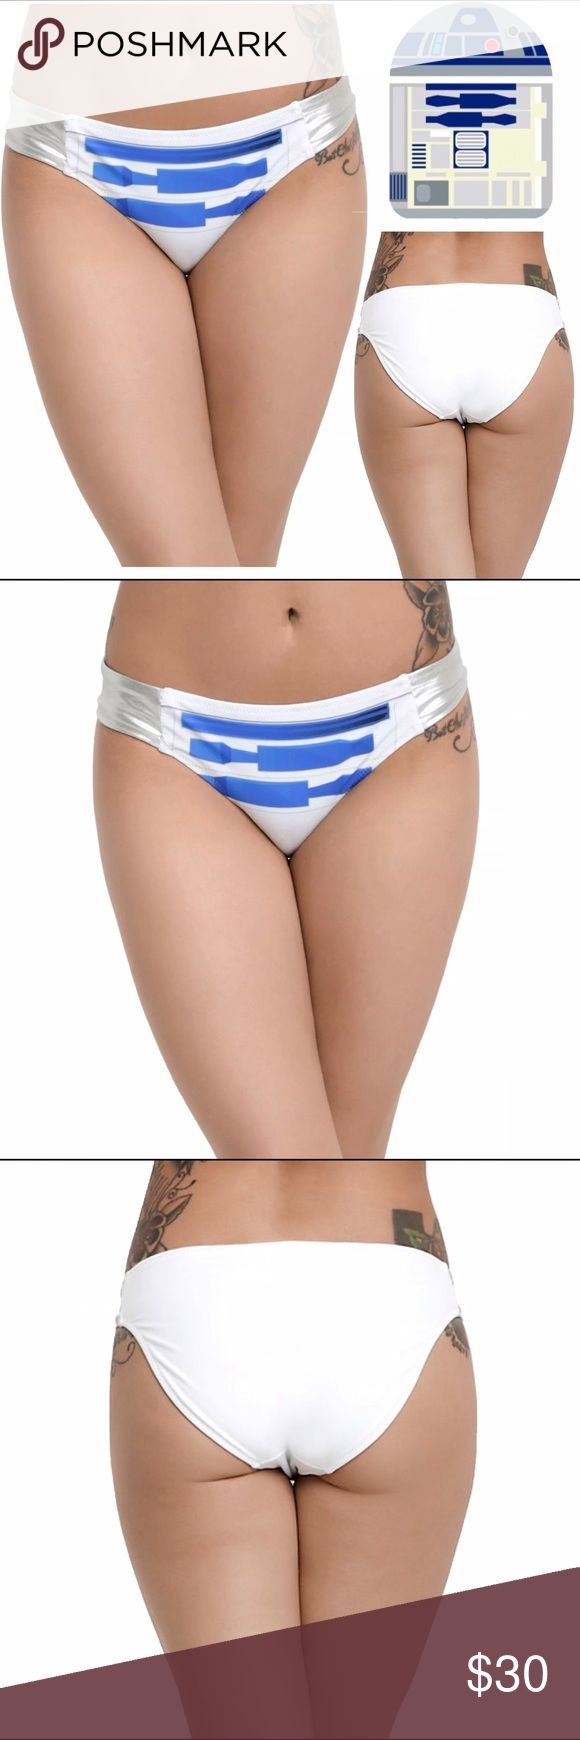 R2D2 S Cosplay Costume Swim Bikini Bottom DISNEY STAR WARS R2D2 Cosplay Bikini Bottom Condition: New with tags Size: Small Color: White, blue, & silver Product Details: R2D2 Print Swim Bottom Perfect for regular swimming, Cosplay, & Costumes Body: 82% Nylon; 16% Spandex Lining: 100% Polyester Hand wash cold; drip dry Brand New with tags Disney Swim Bikinis